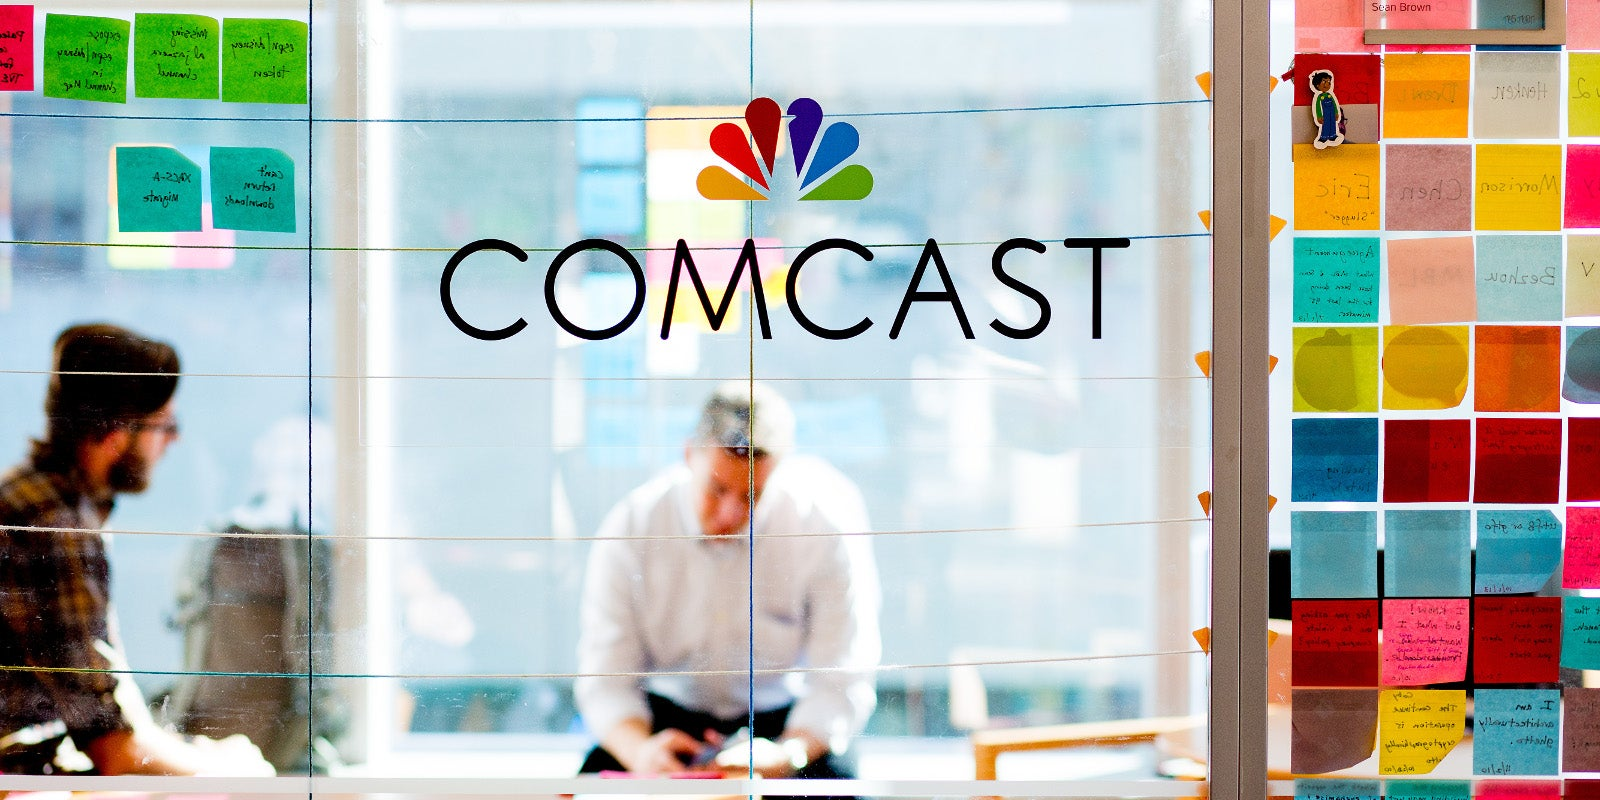 A Dumb Typo Saw Comcast Penalise the Wrong Guy For Heavy Data Usage